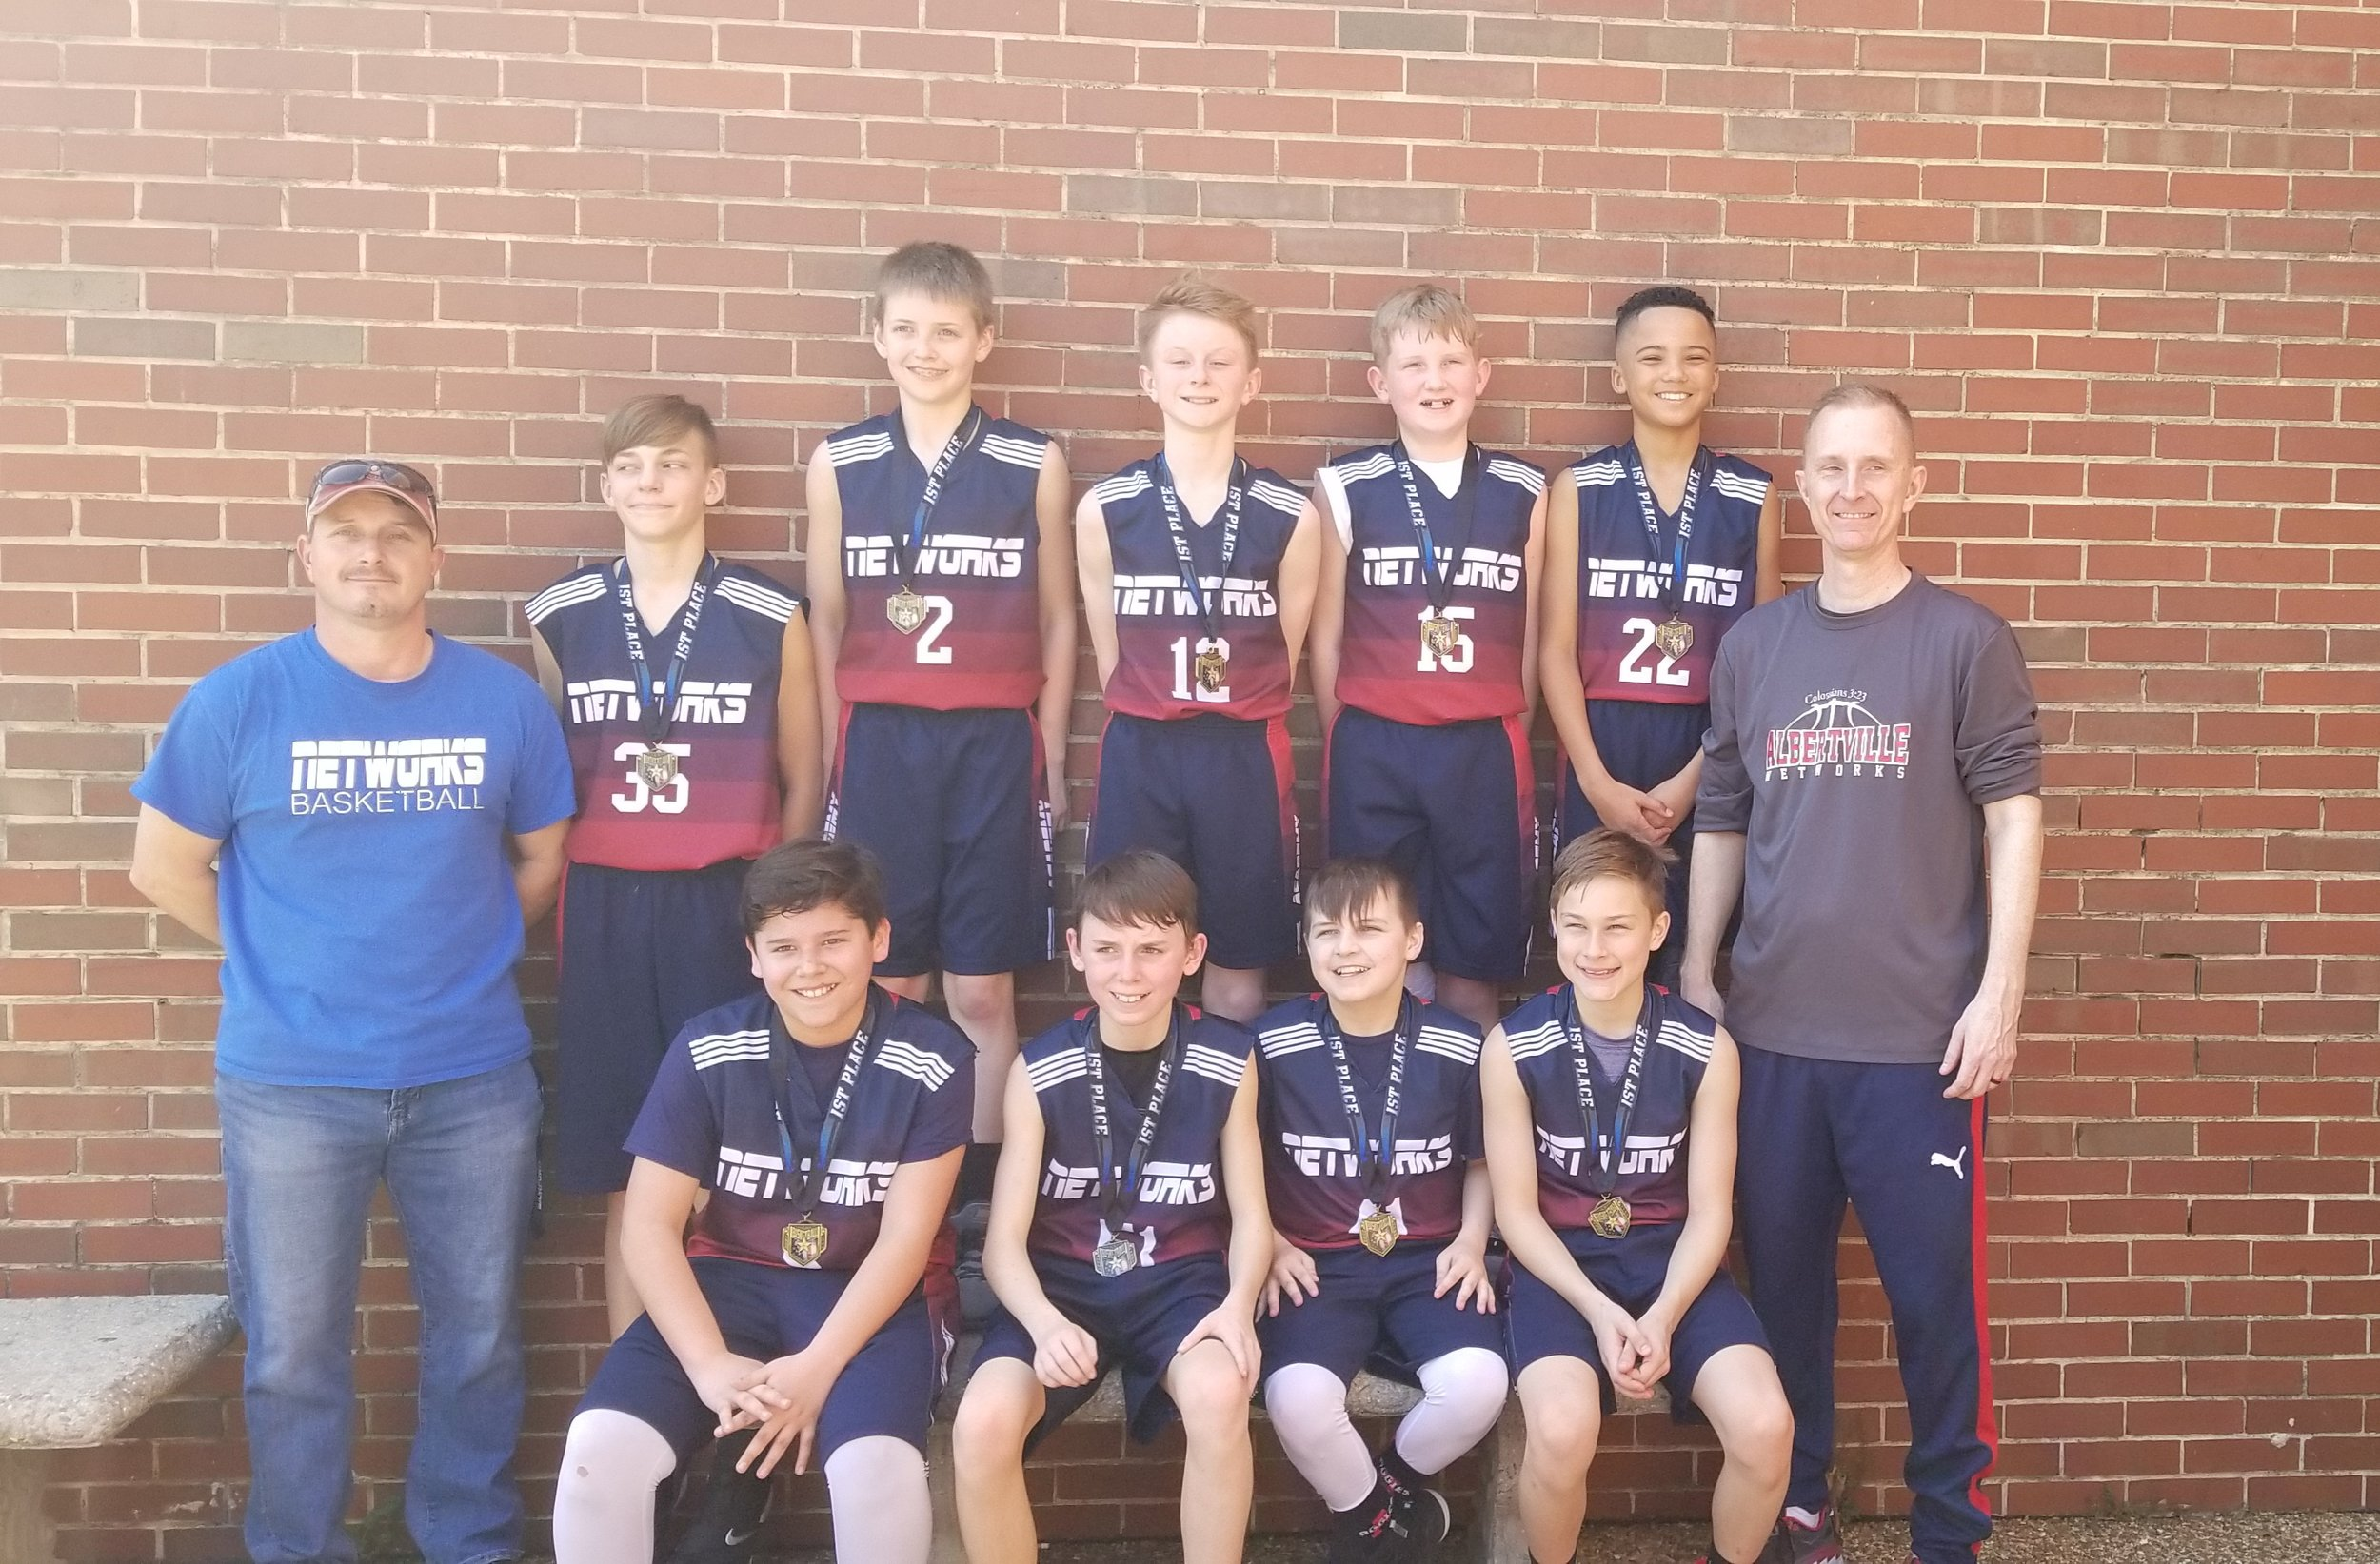 6th Grade Boys had a great spring season and won 2 tournaments.